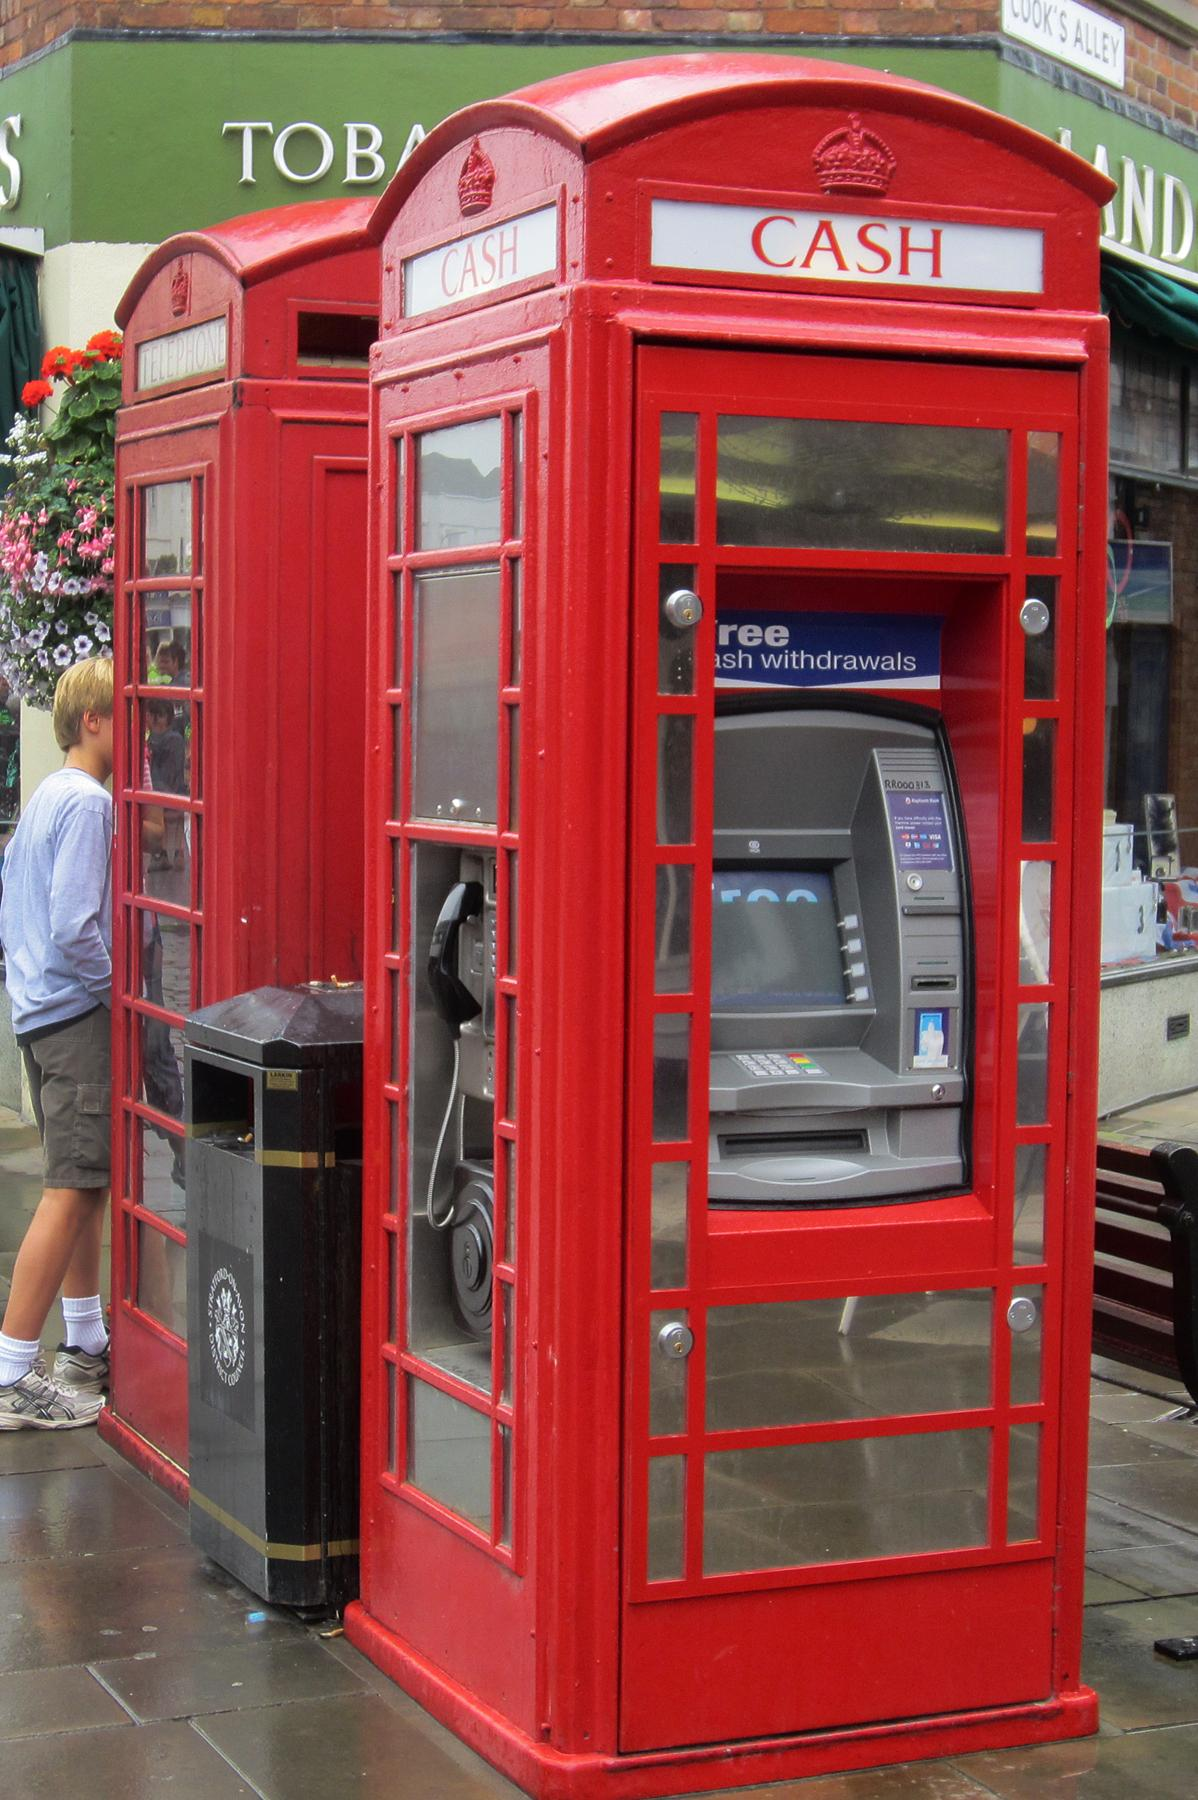 An ATM has been installed in this phone box in Stratford-Upon-Avon, shown here on Aug. 12, 2012.